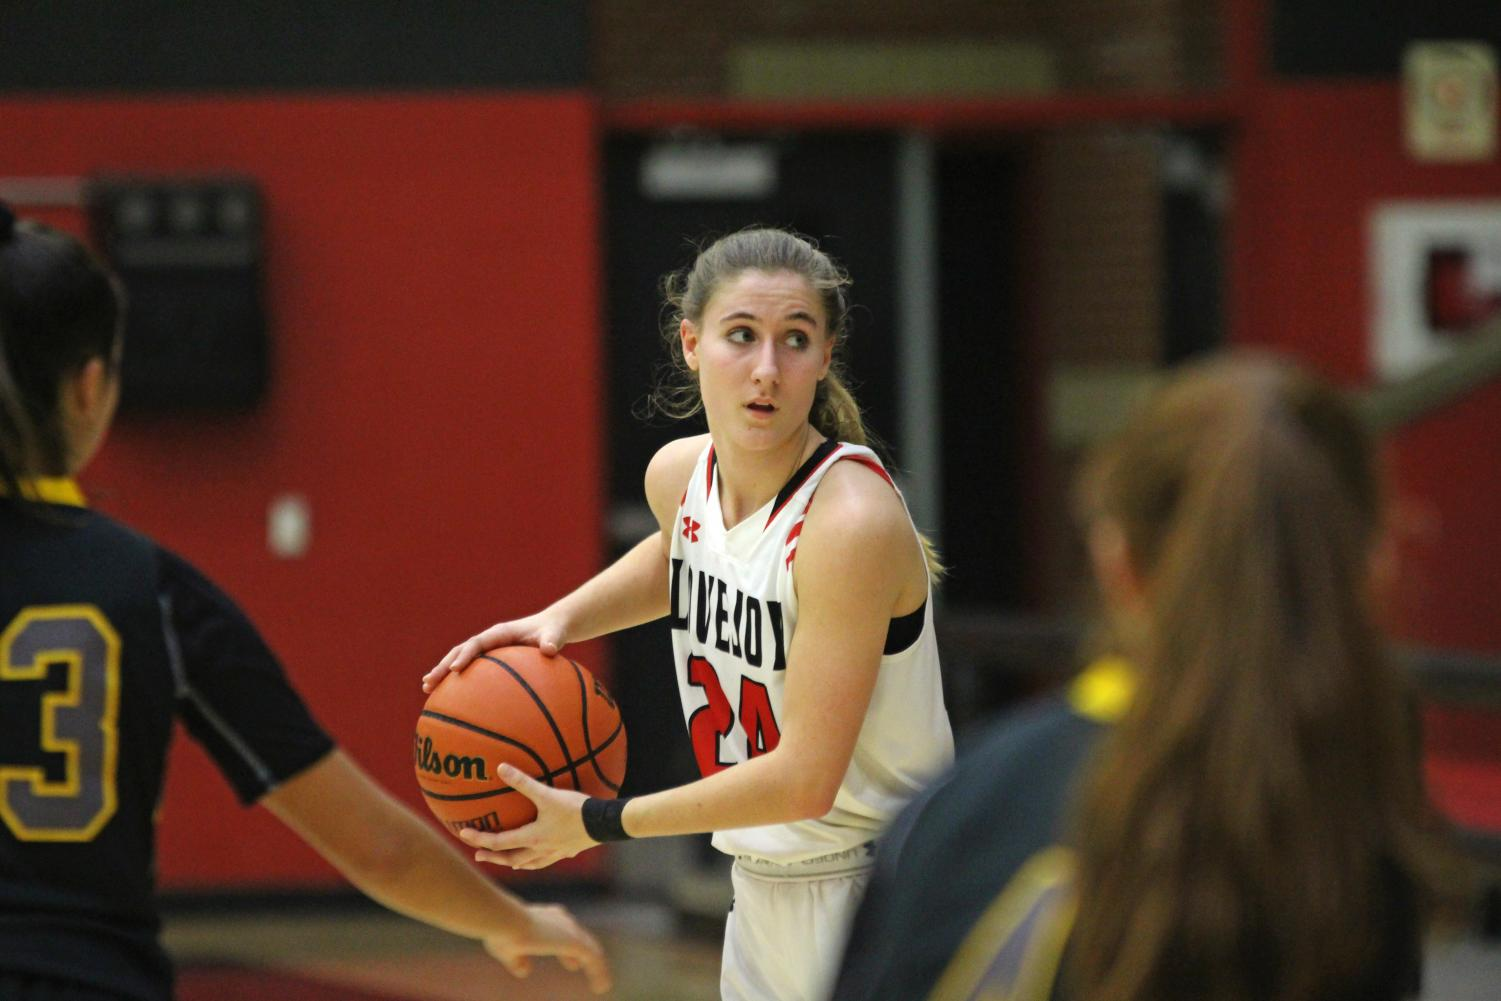 Senior Carsen McFadden looks to drive to the lane and dump the ball to senior Carly Ludlow for a basket.